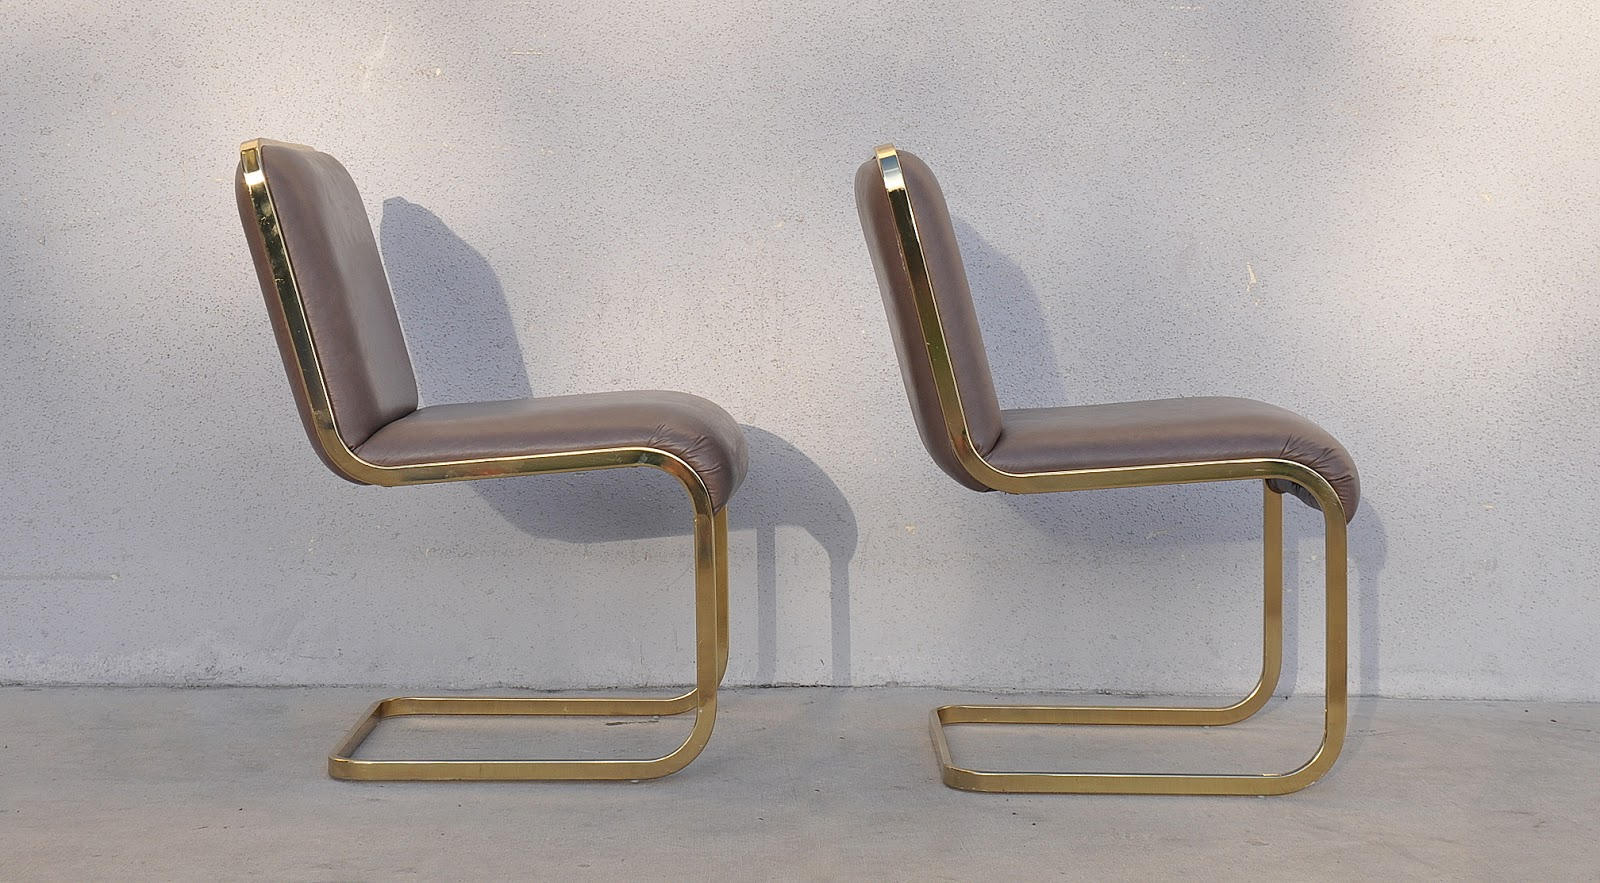 Ordinaire Pair Of Milo Baughman Cantilever Brass Chairs